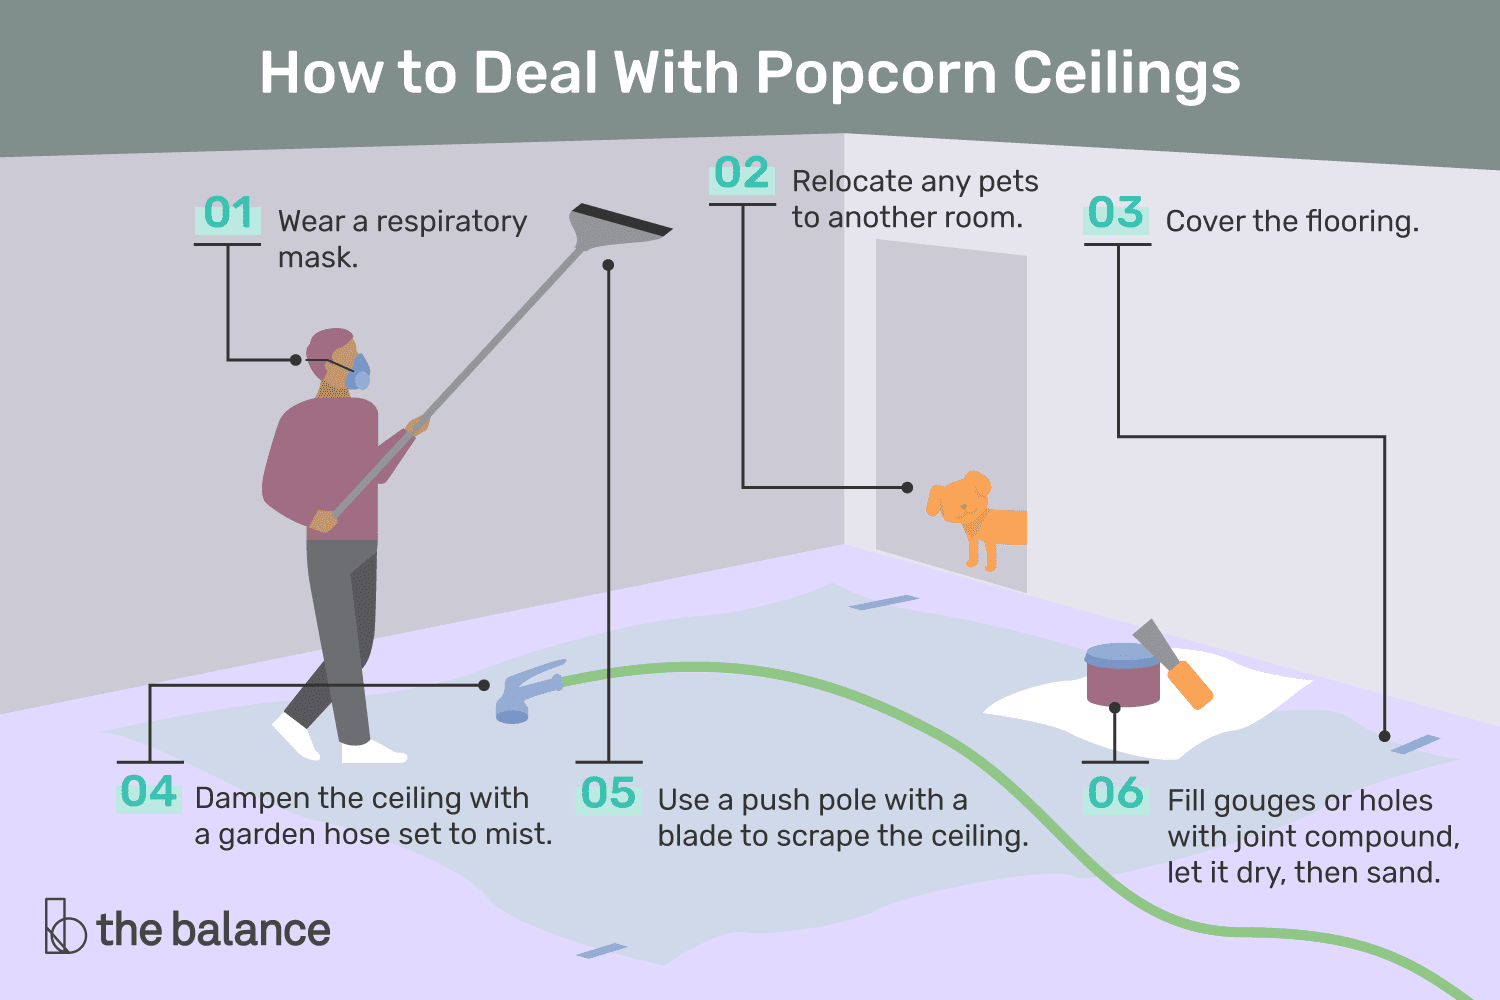 Should You Buy A Home With Popcorn Ceilings